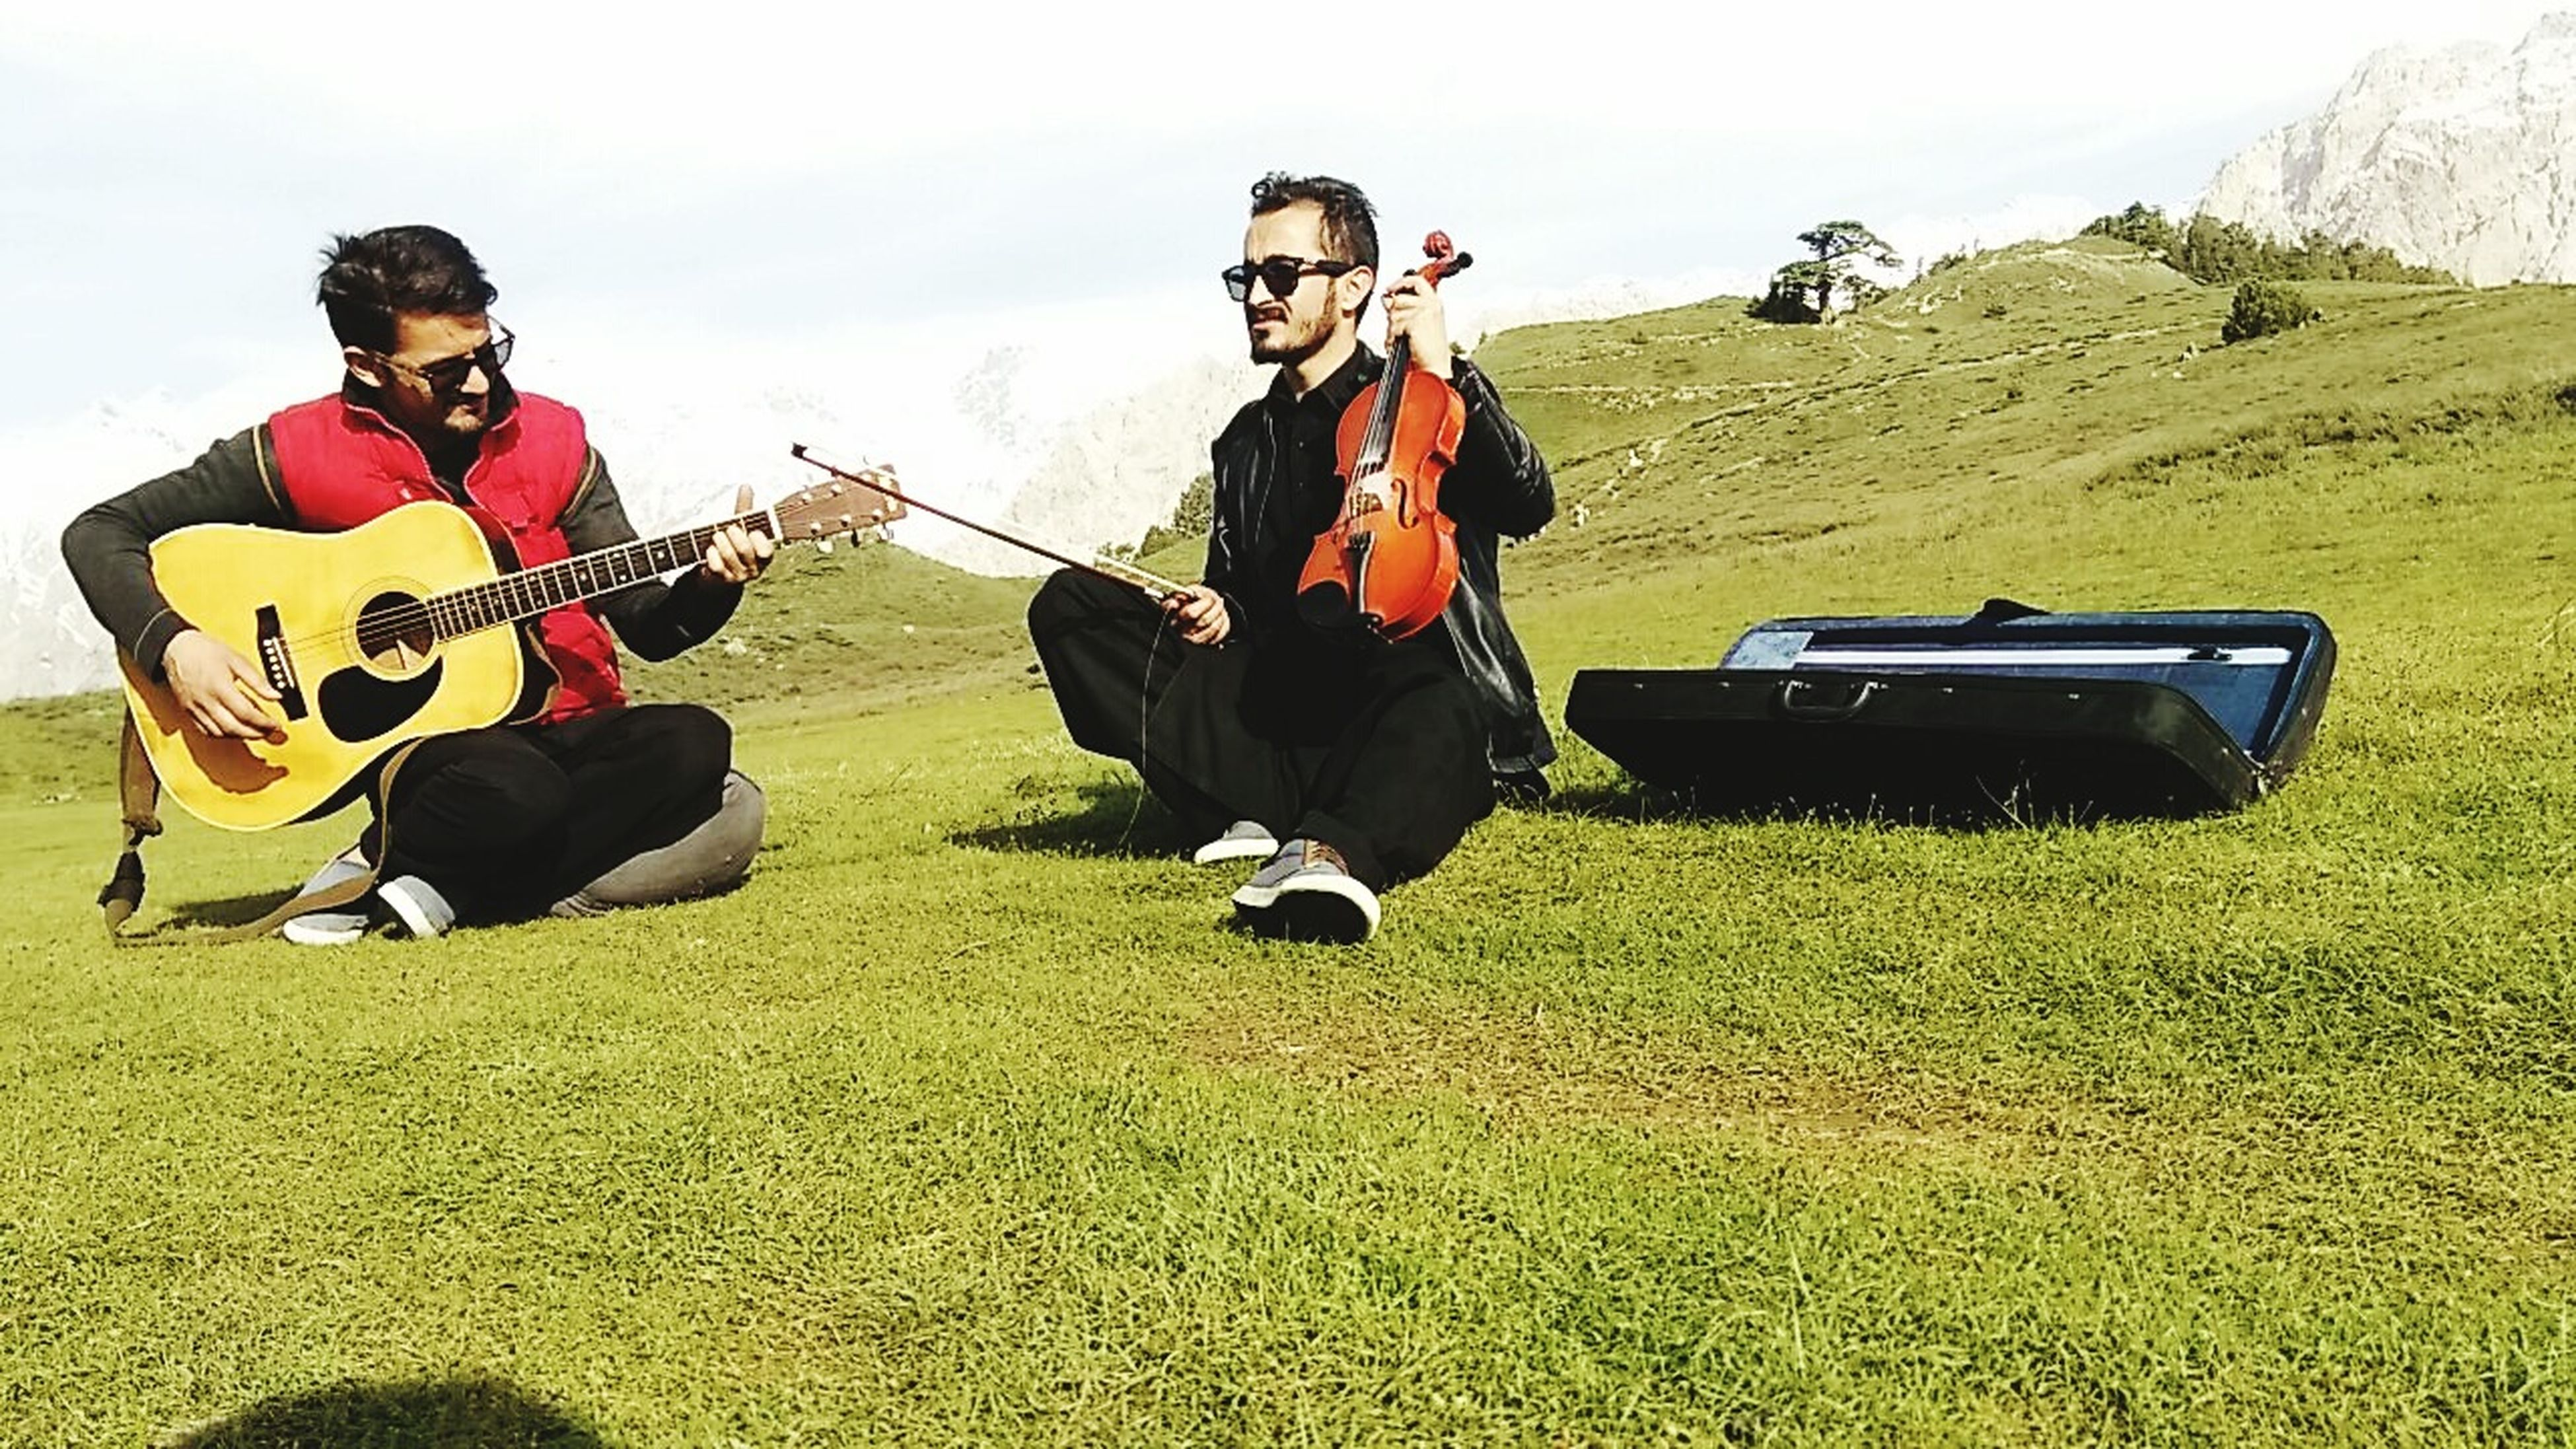 playing, guitar, music, sitting, enjoyment, young adult, musical instrument, plucking an instrument, adults only, outdoors, adult, full length, fun, people, guitarist, only men, leisure activity, musician, men, day, togetherness, friendship, sky